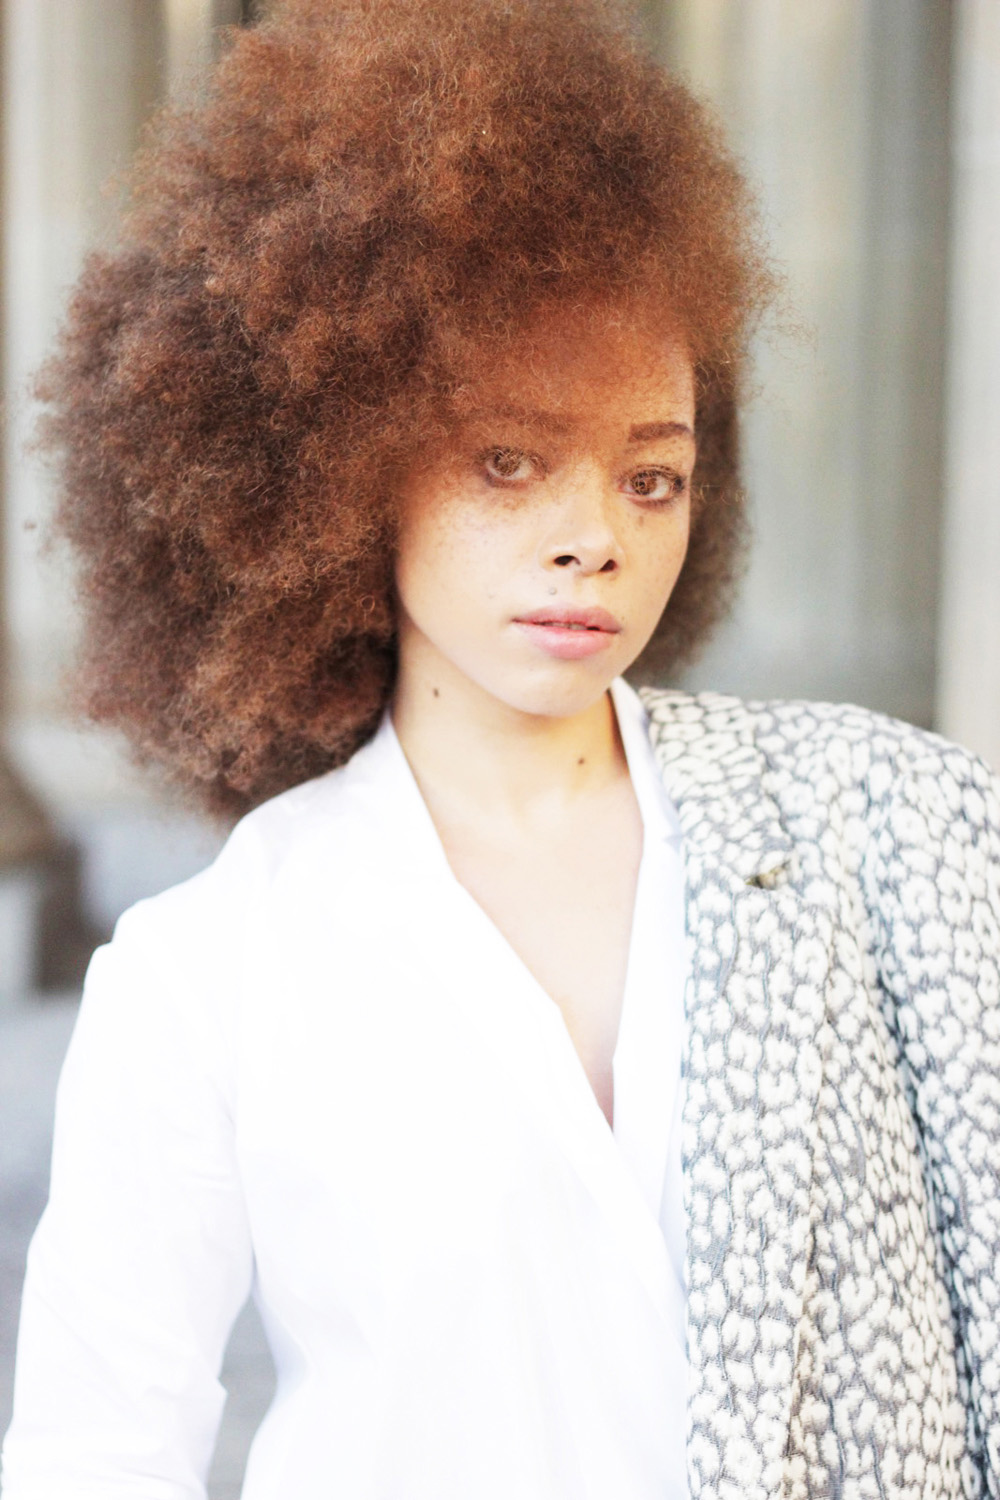 fatimayarie-afro-freckles-redcurls-naturalhair-patterned-blazer-berlinfashionweek-img_1776